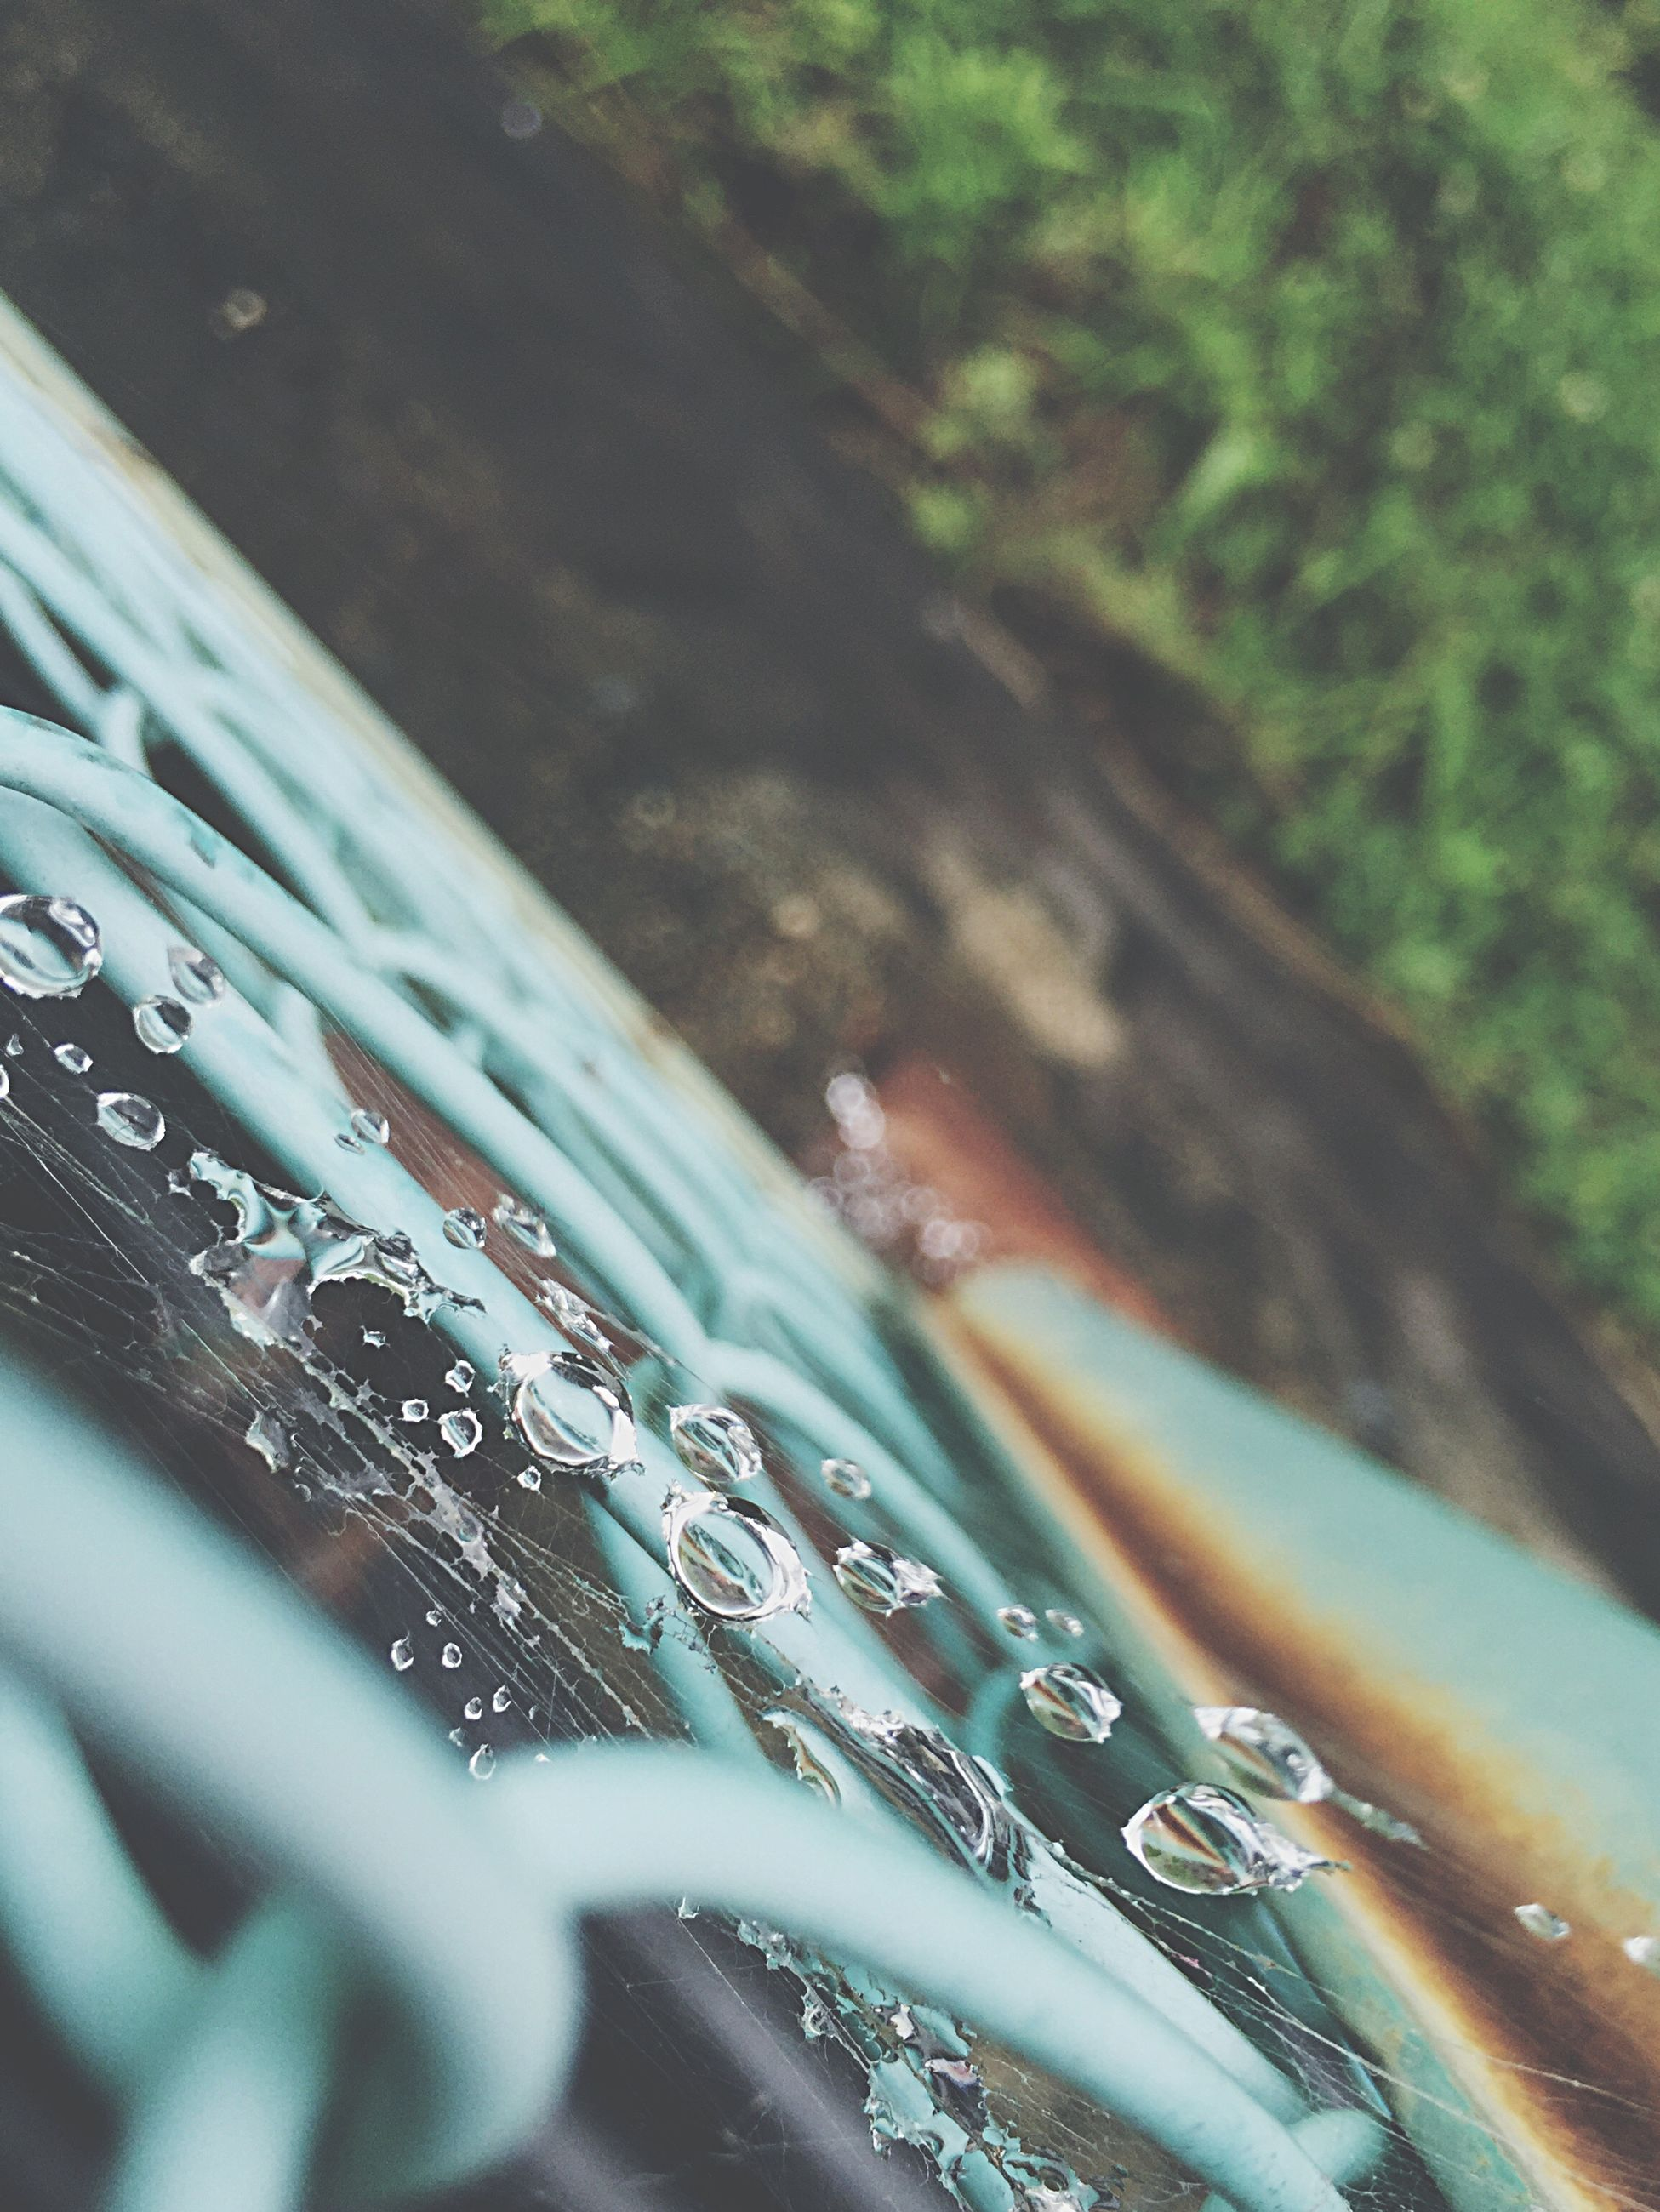 water, high angle view, nature, wet, transportation, day, reflection, outdoors, beauty in nature, tranquility, no people, drop, motion, selective focus, mode of transport, close-up, scenics, river, rain, sunlight